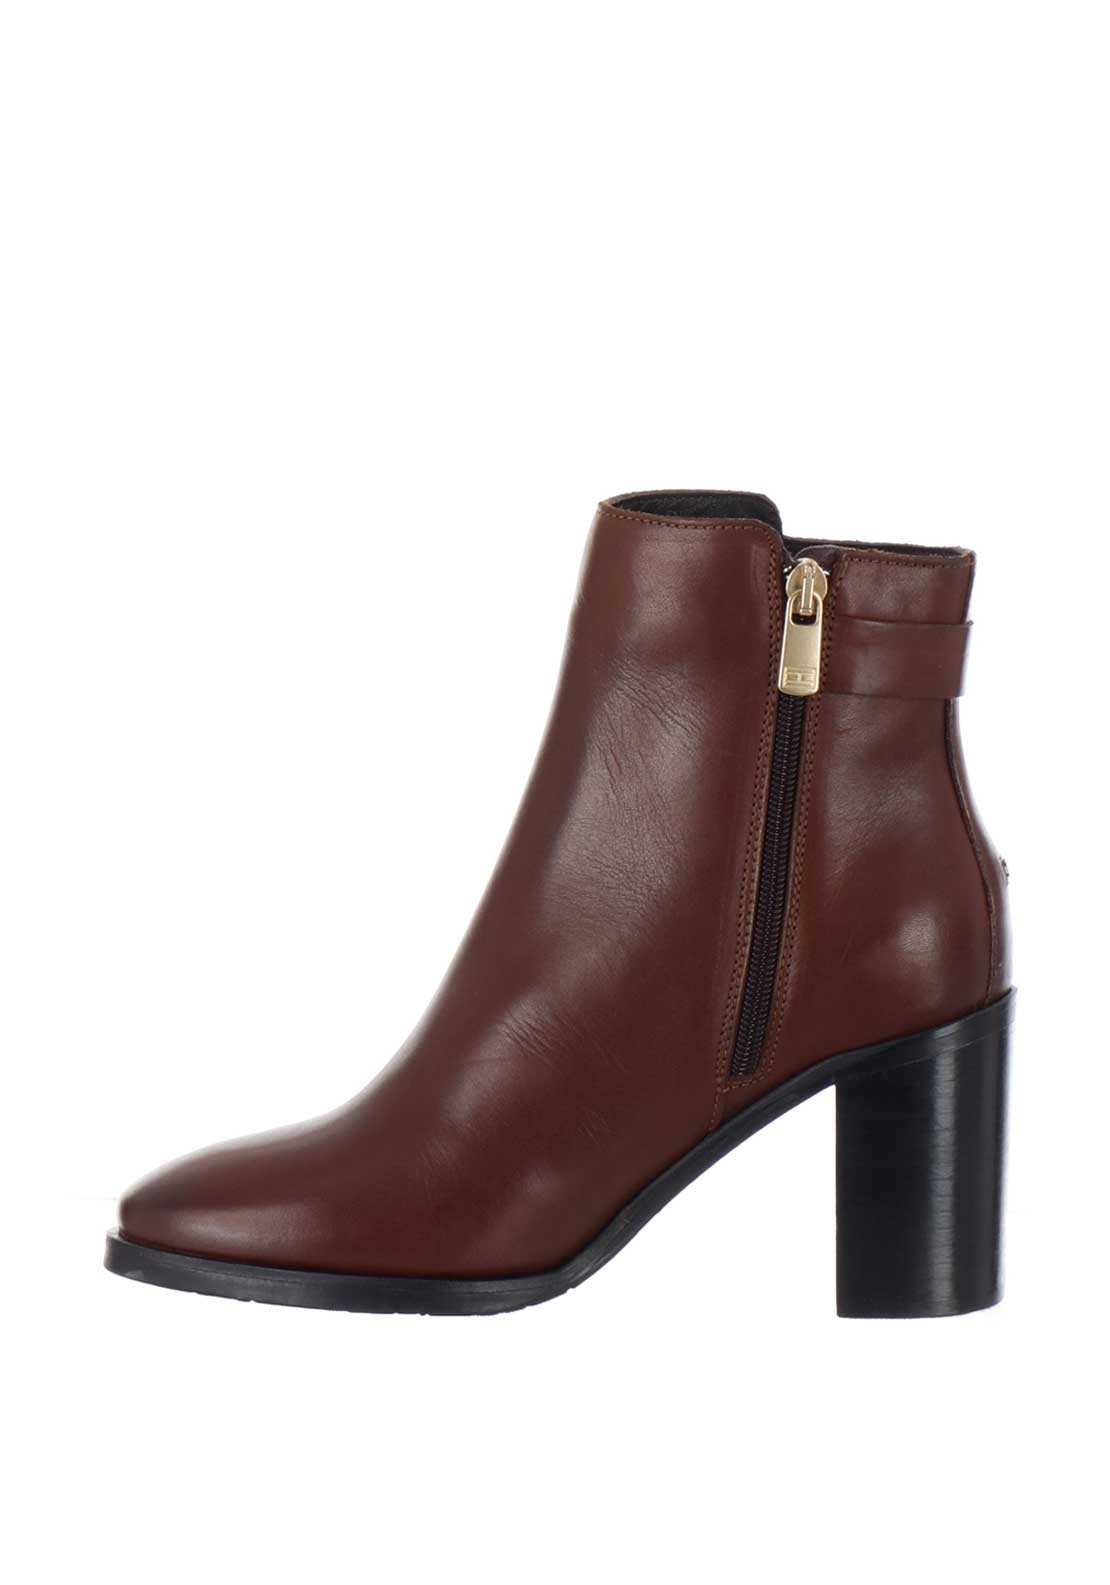 b0dc805debd Tommy Hilfiger Womens Buckle Block Heel Boots, Brown